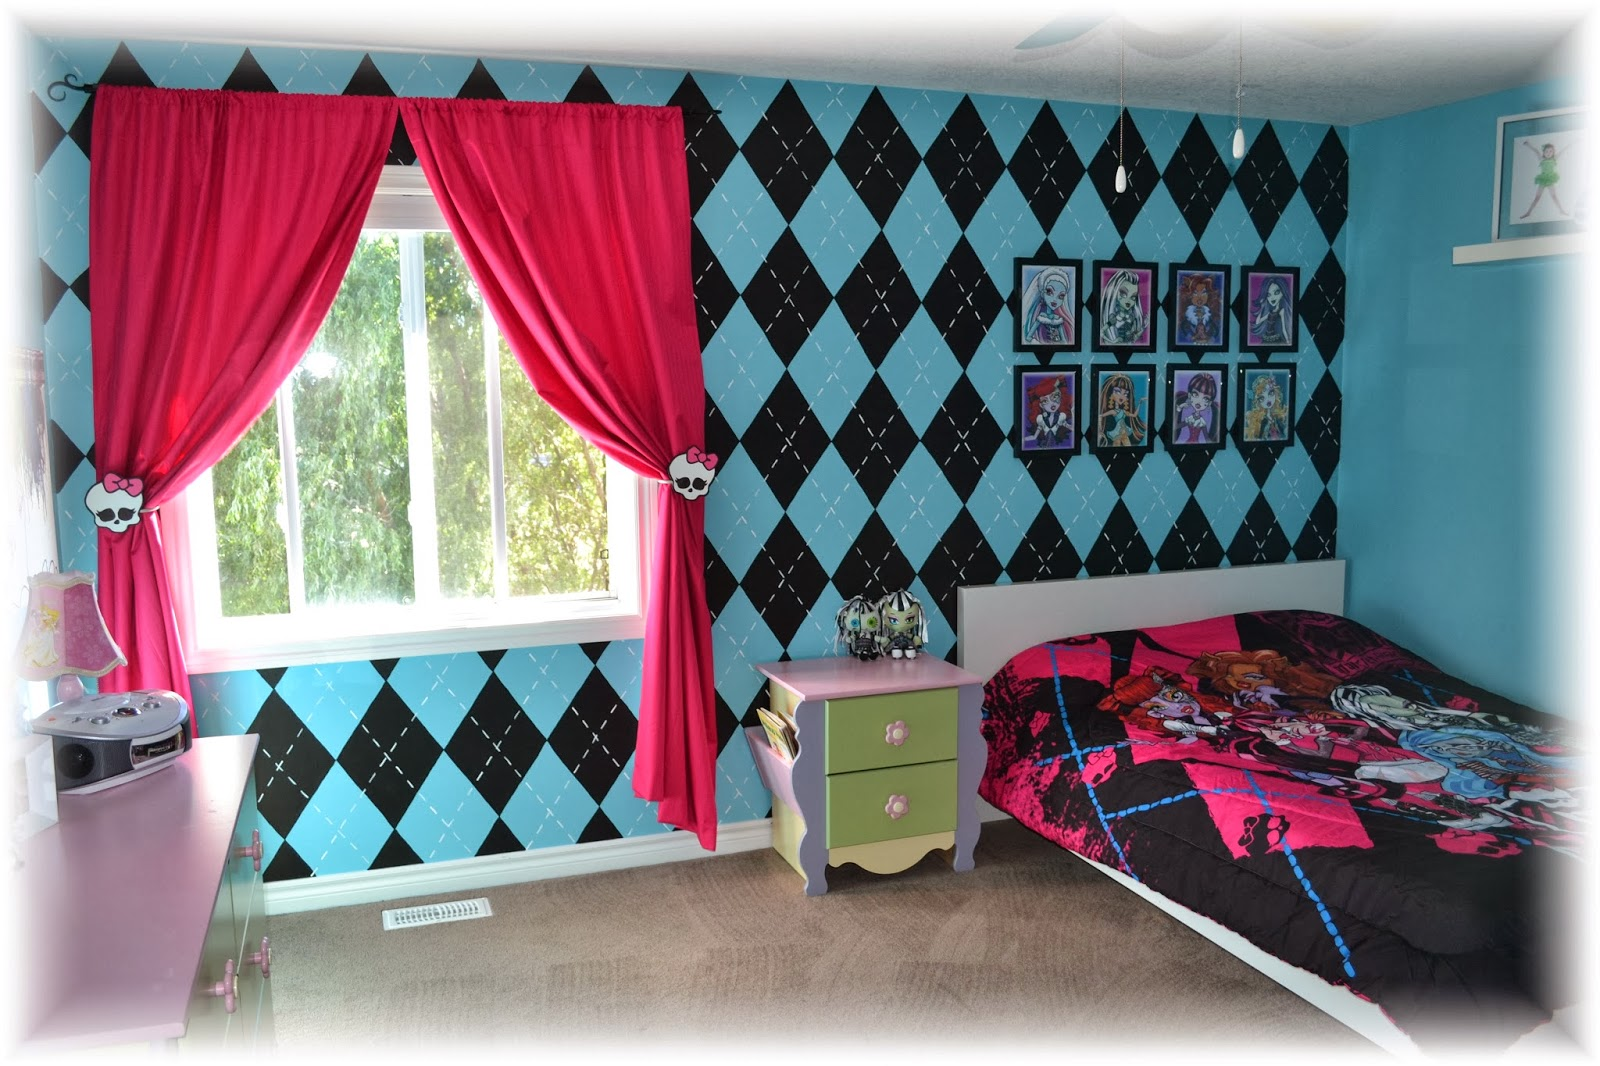 Uncategorized Monster High Paint Colors cake momma the monster high bedroom for back wall i used a diamond template trace after black diamonds were painted on went with fine paint brush and did the